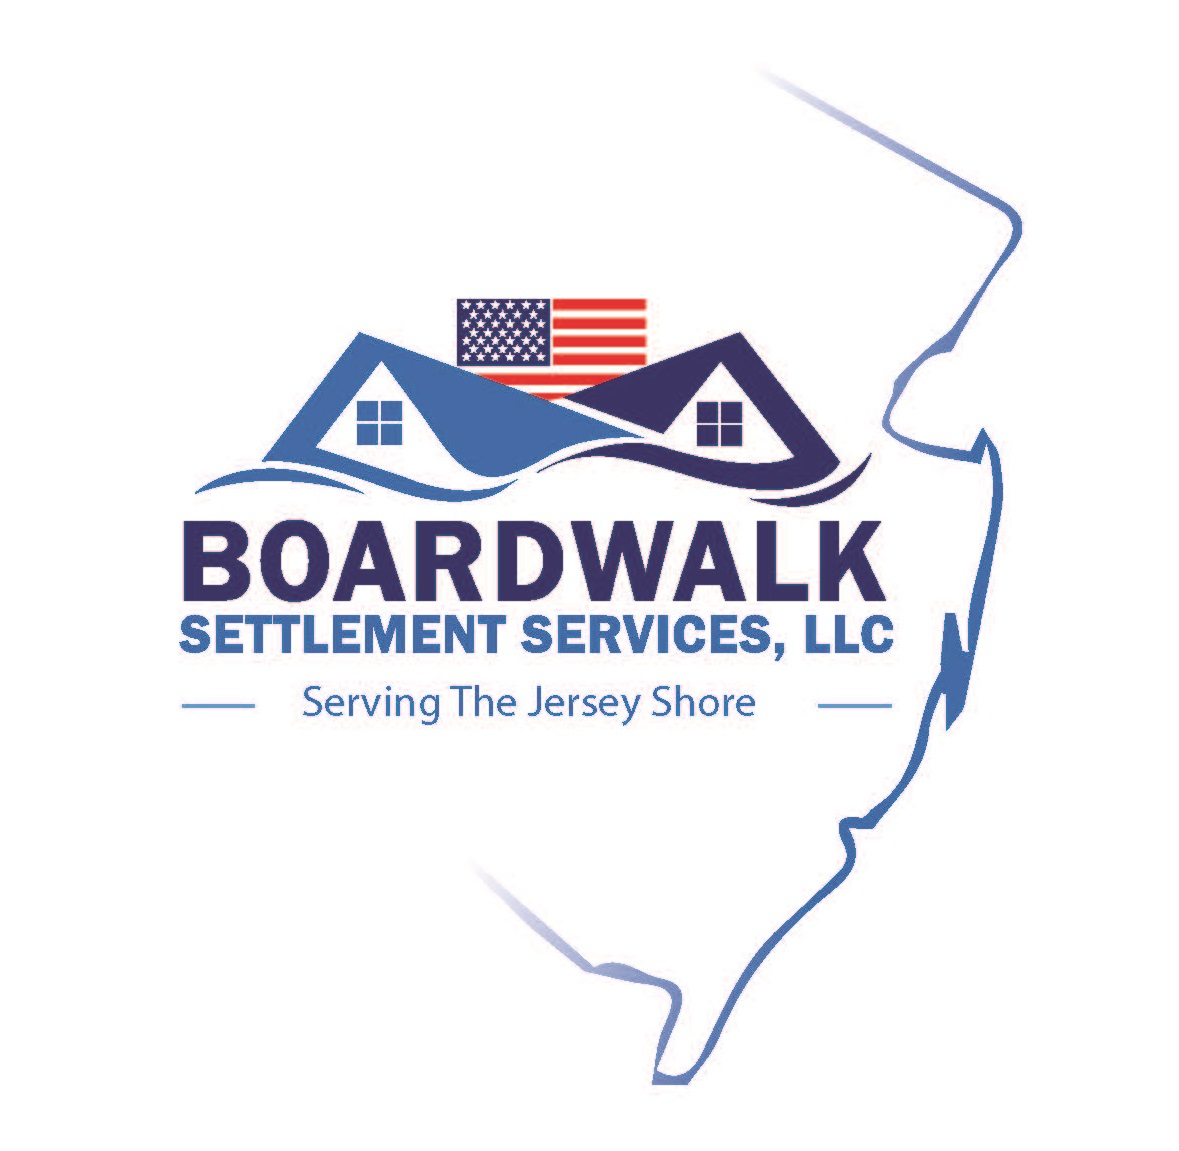 Boardwalk Settlement Services